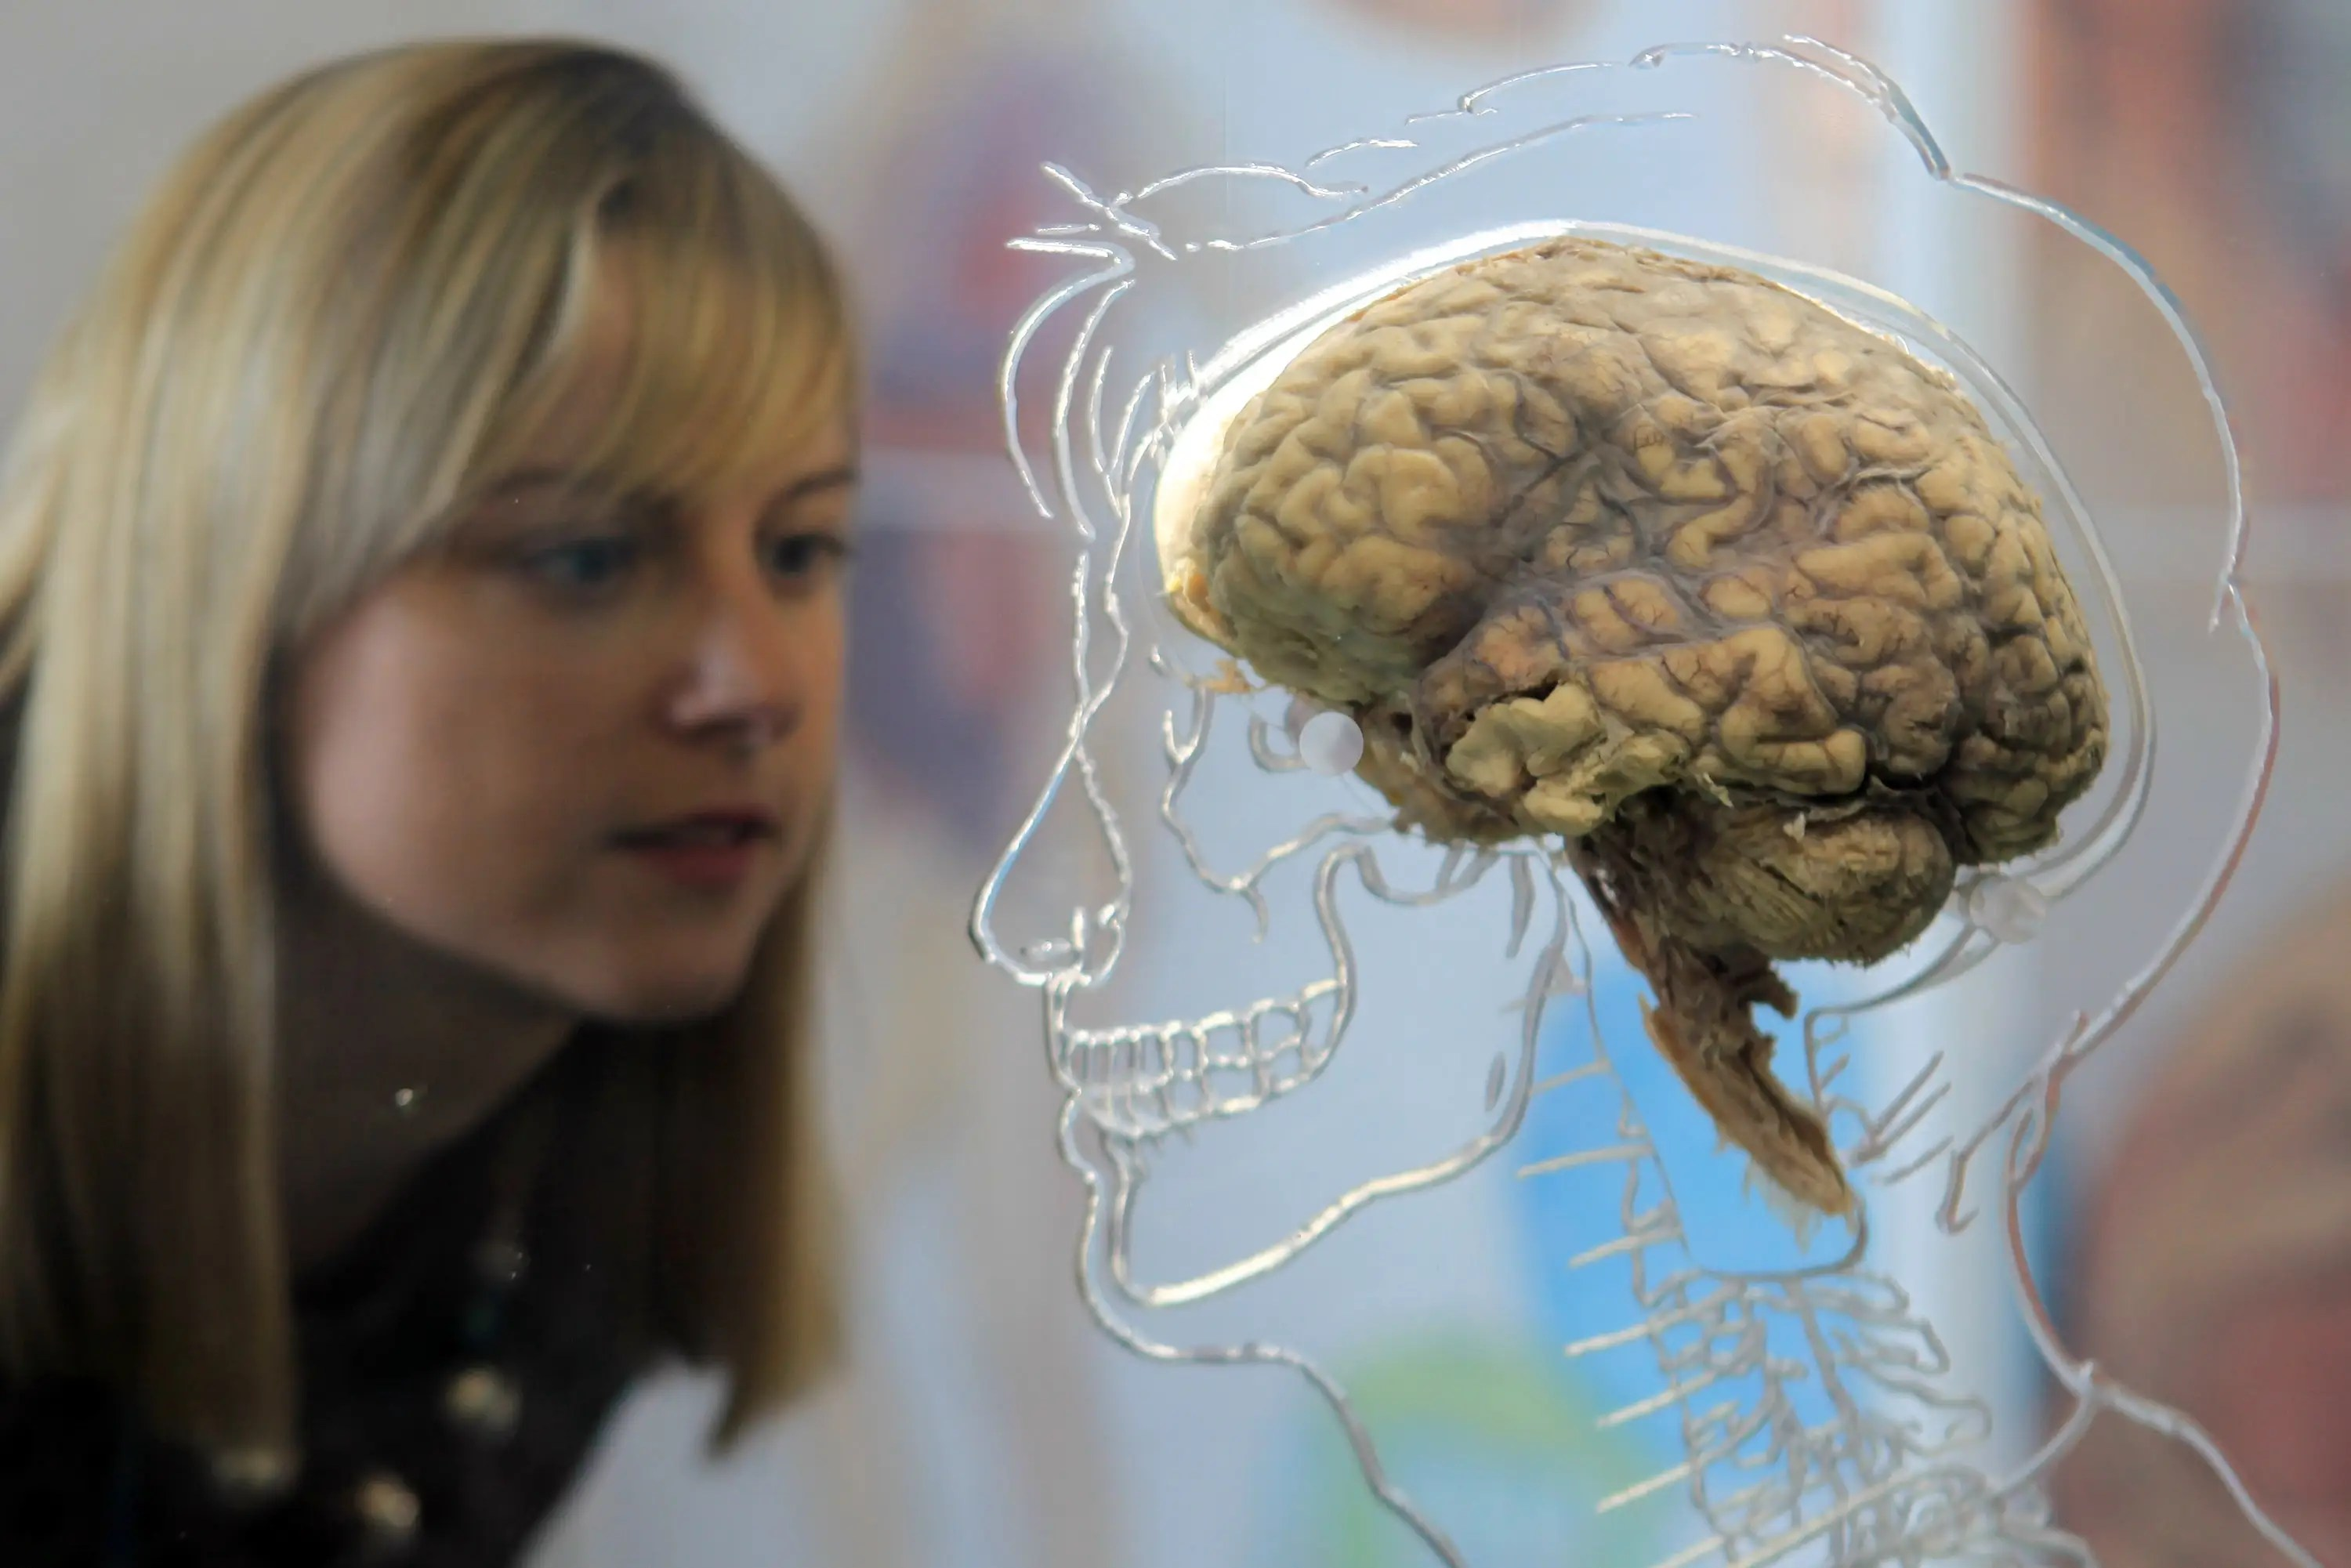 """People don't use """"just 10%"""" of their brains. We use the entire brain for different processes at different times.  We couldn't survive if we scooped out 90% of it."""